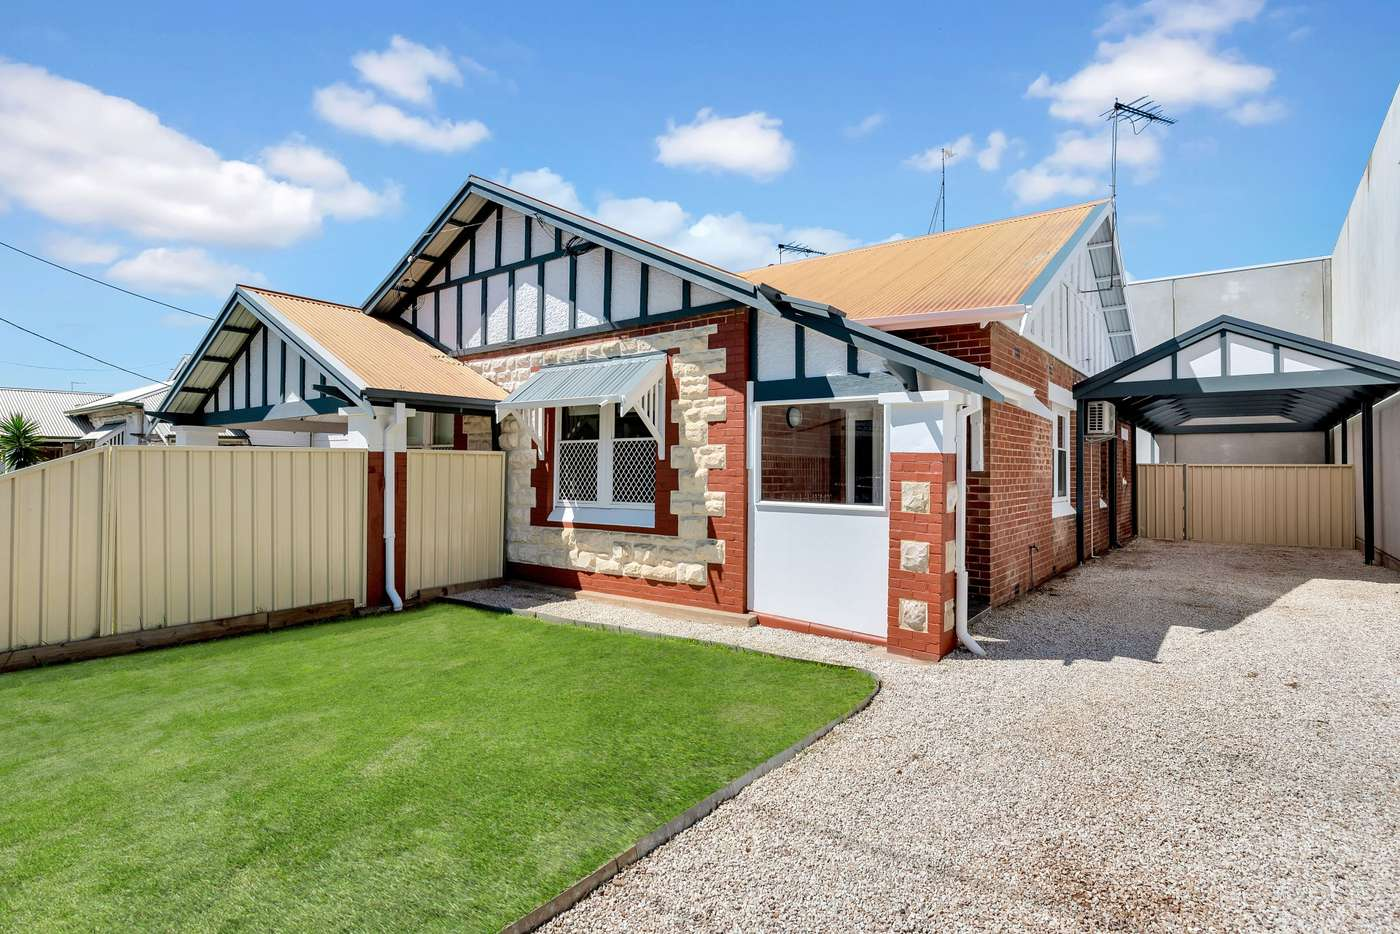 Main view of Homely house listing, 35 Howards Road, Beverley SA 5009